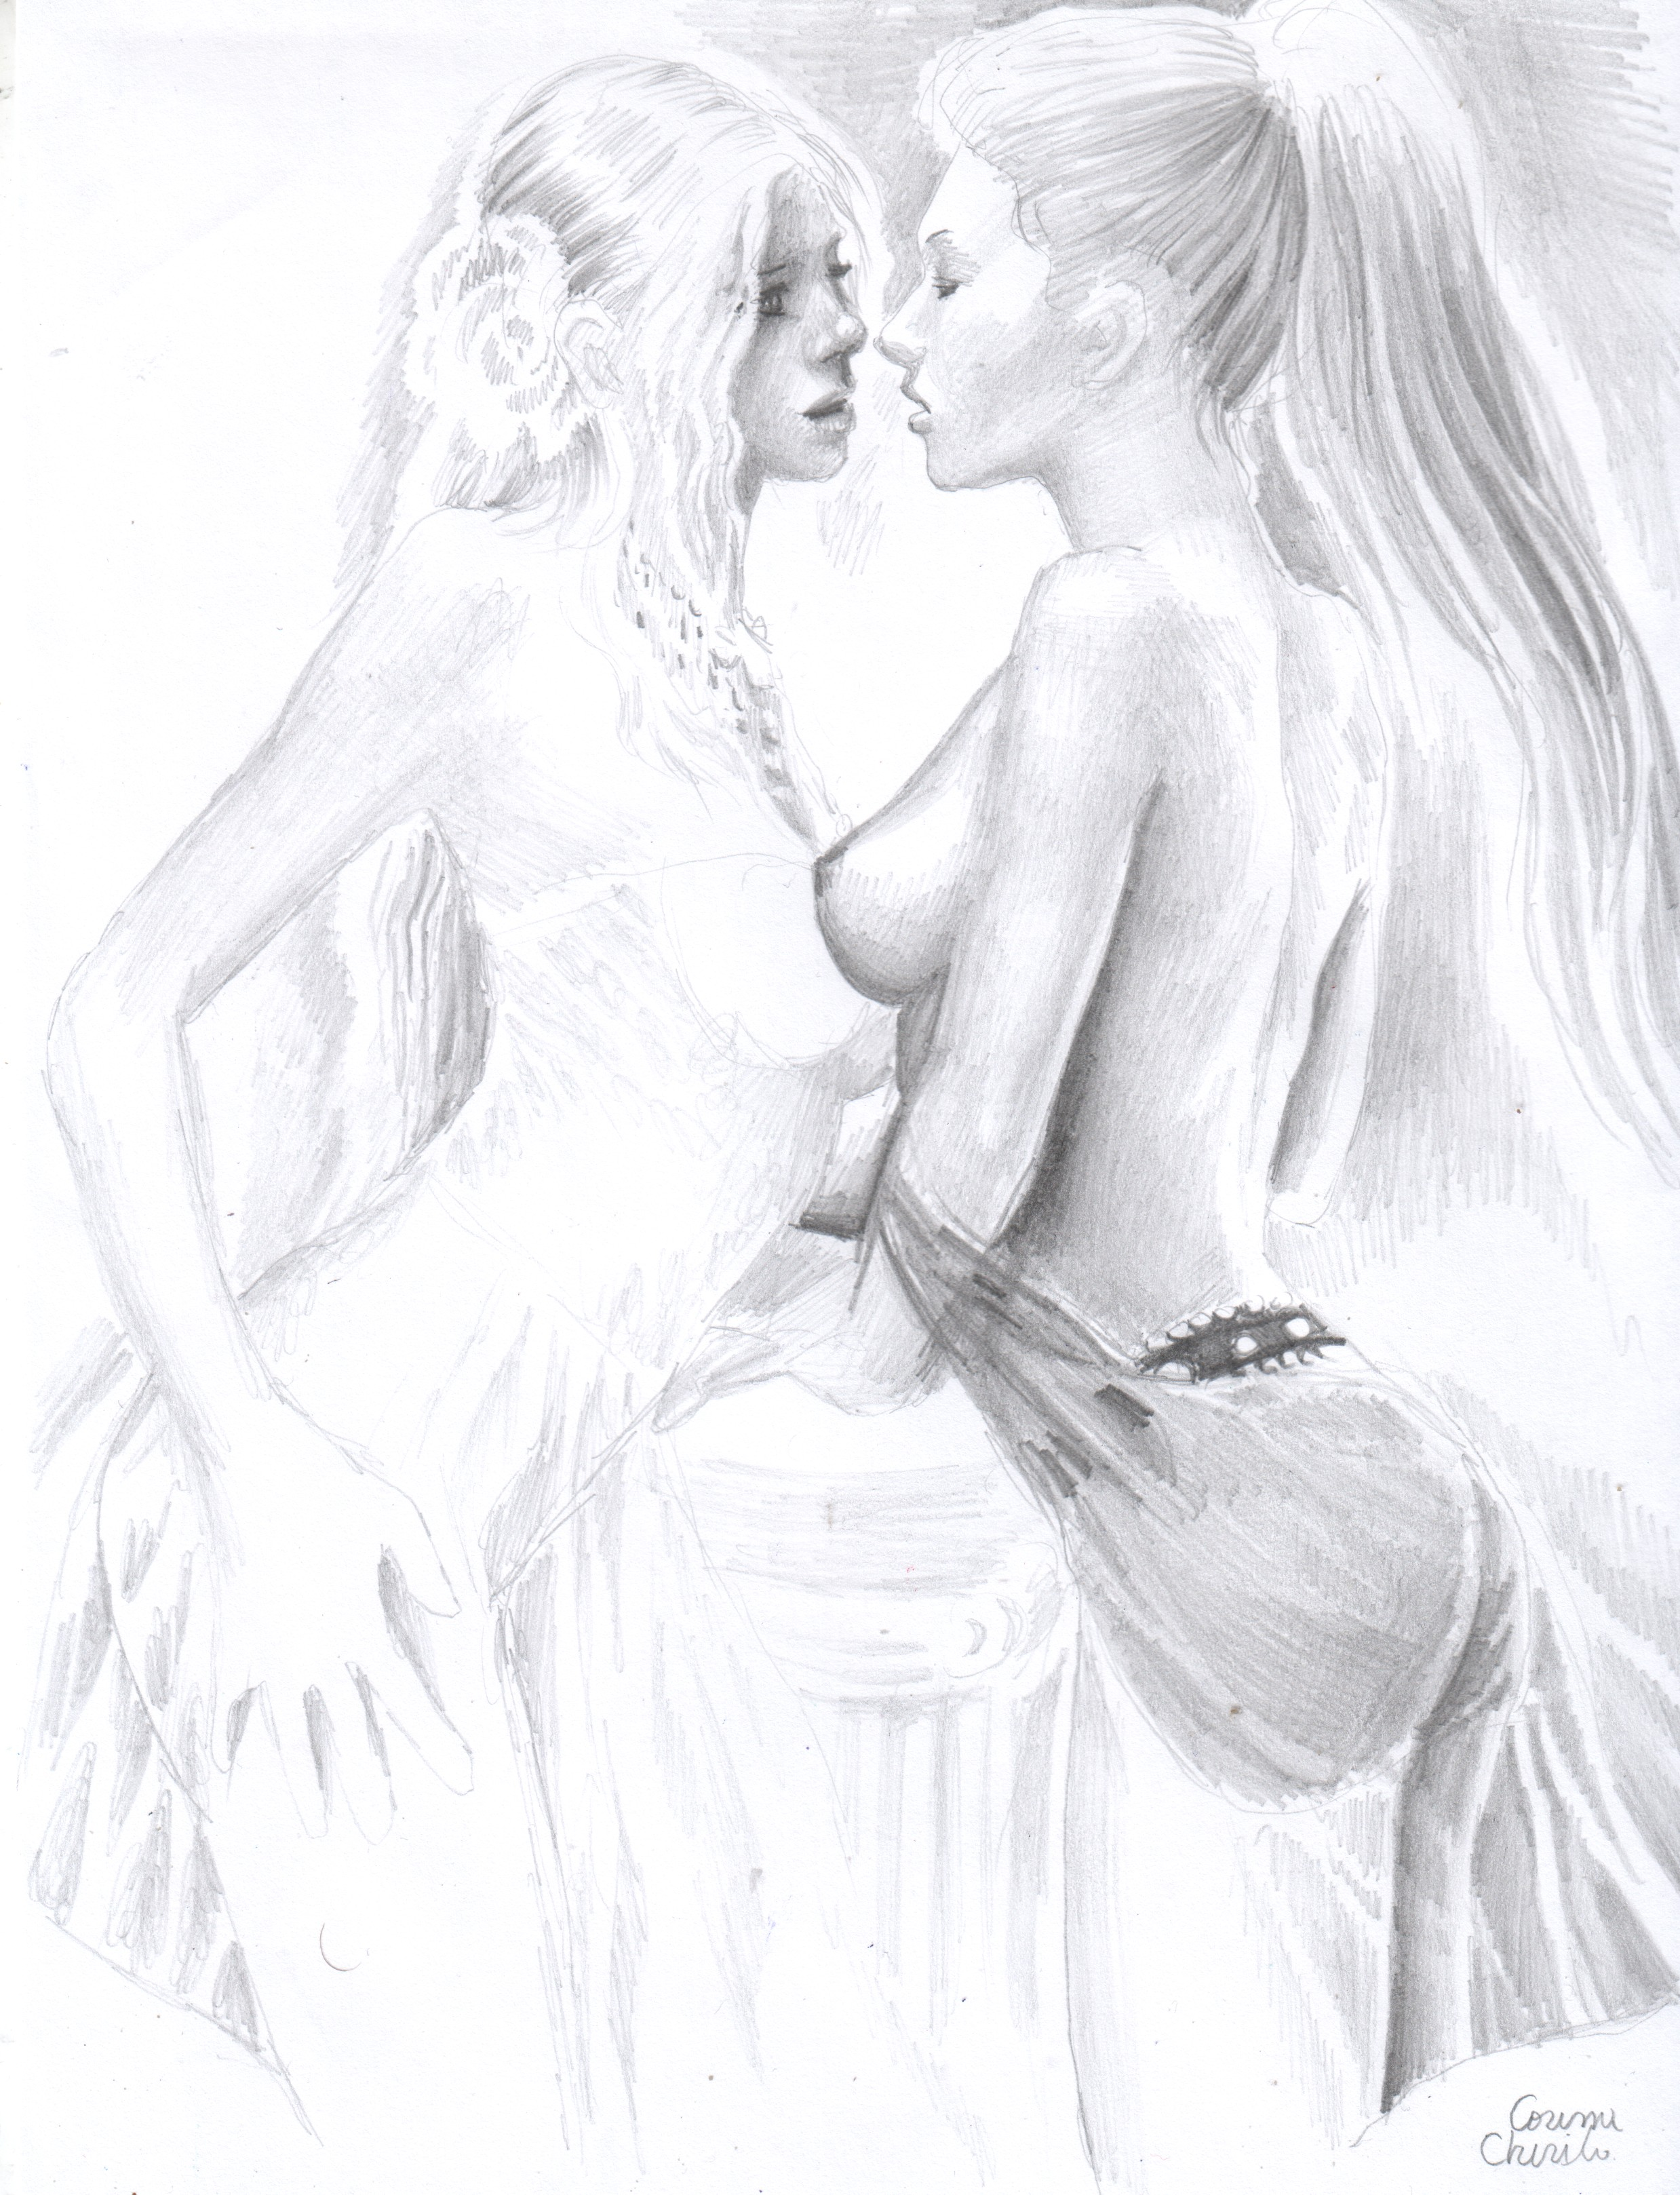 kiss-the-bride-with-pride-romantic-erotica-lesbian-art-pencil-drawing-about-love